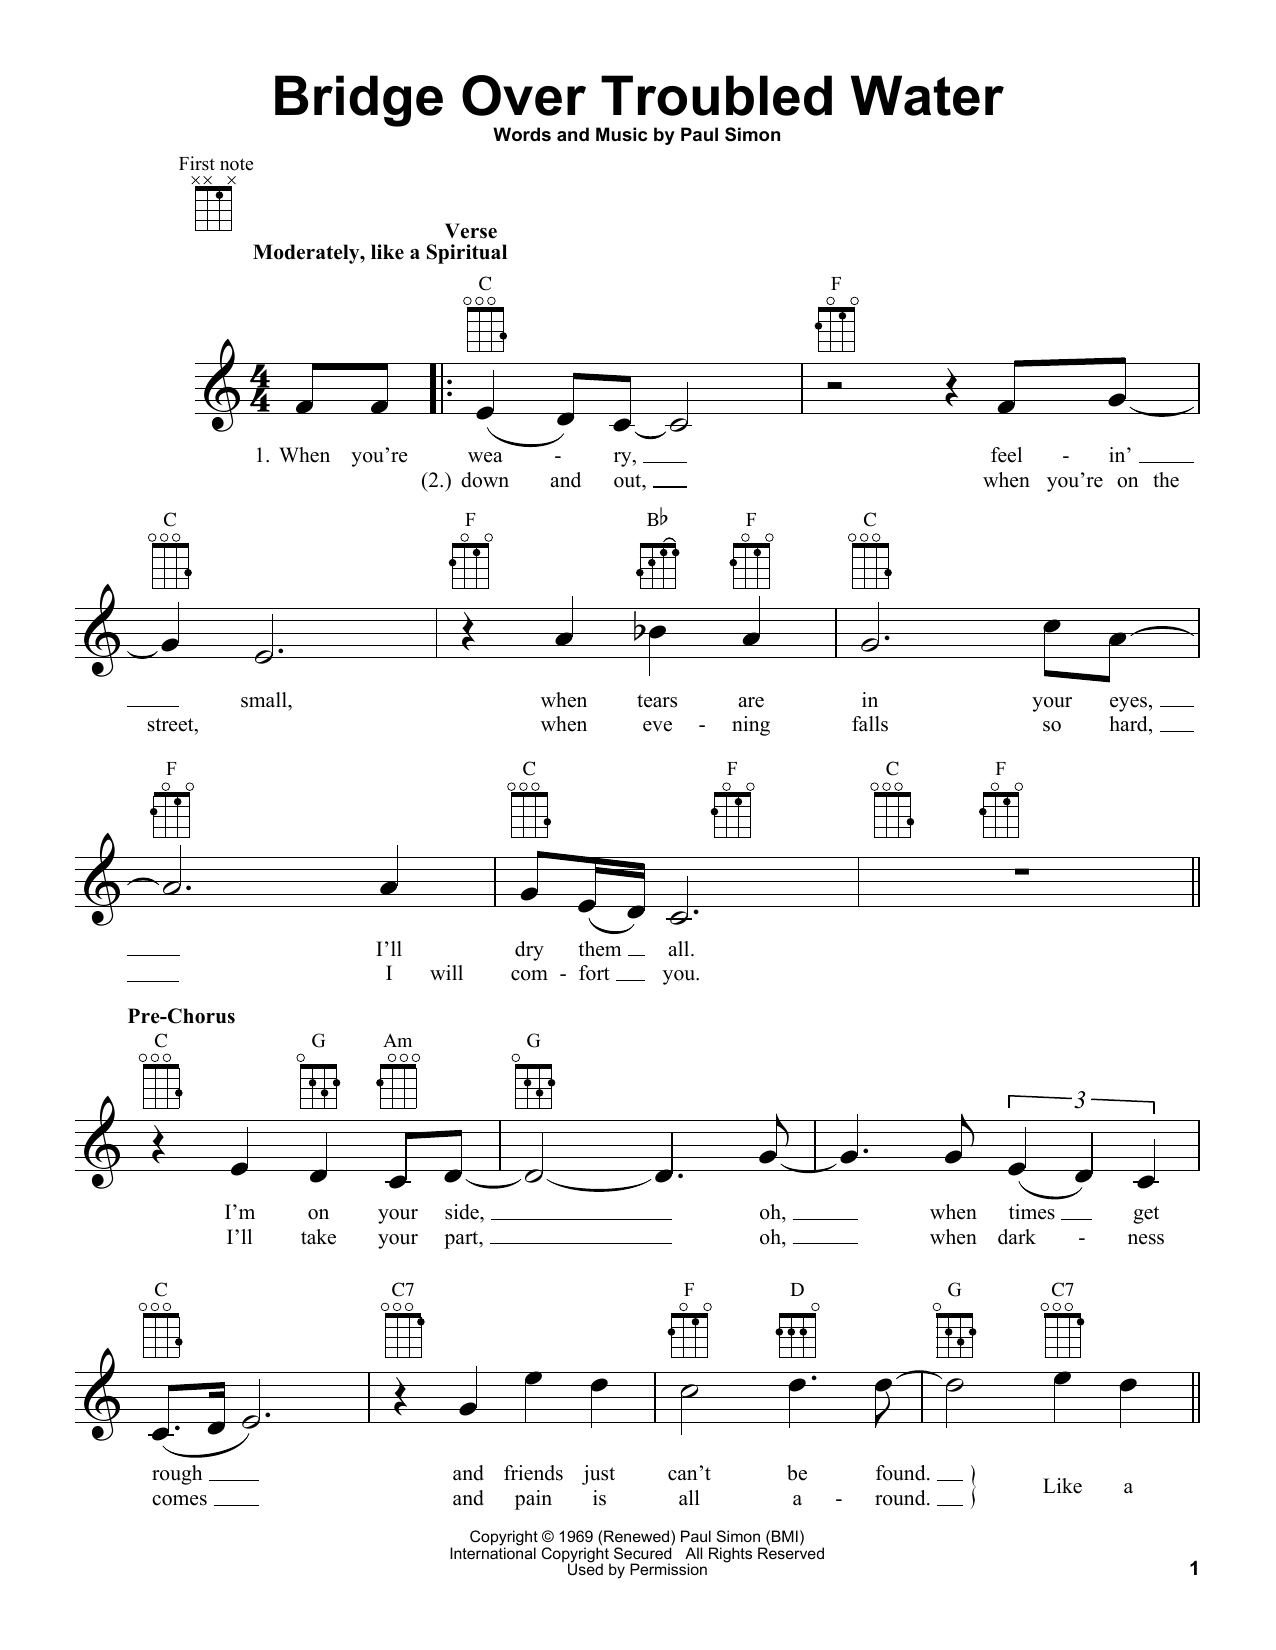 Sheet Music Digital Files To Print - Licensed Simon & Garfunkel ...